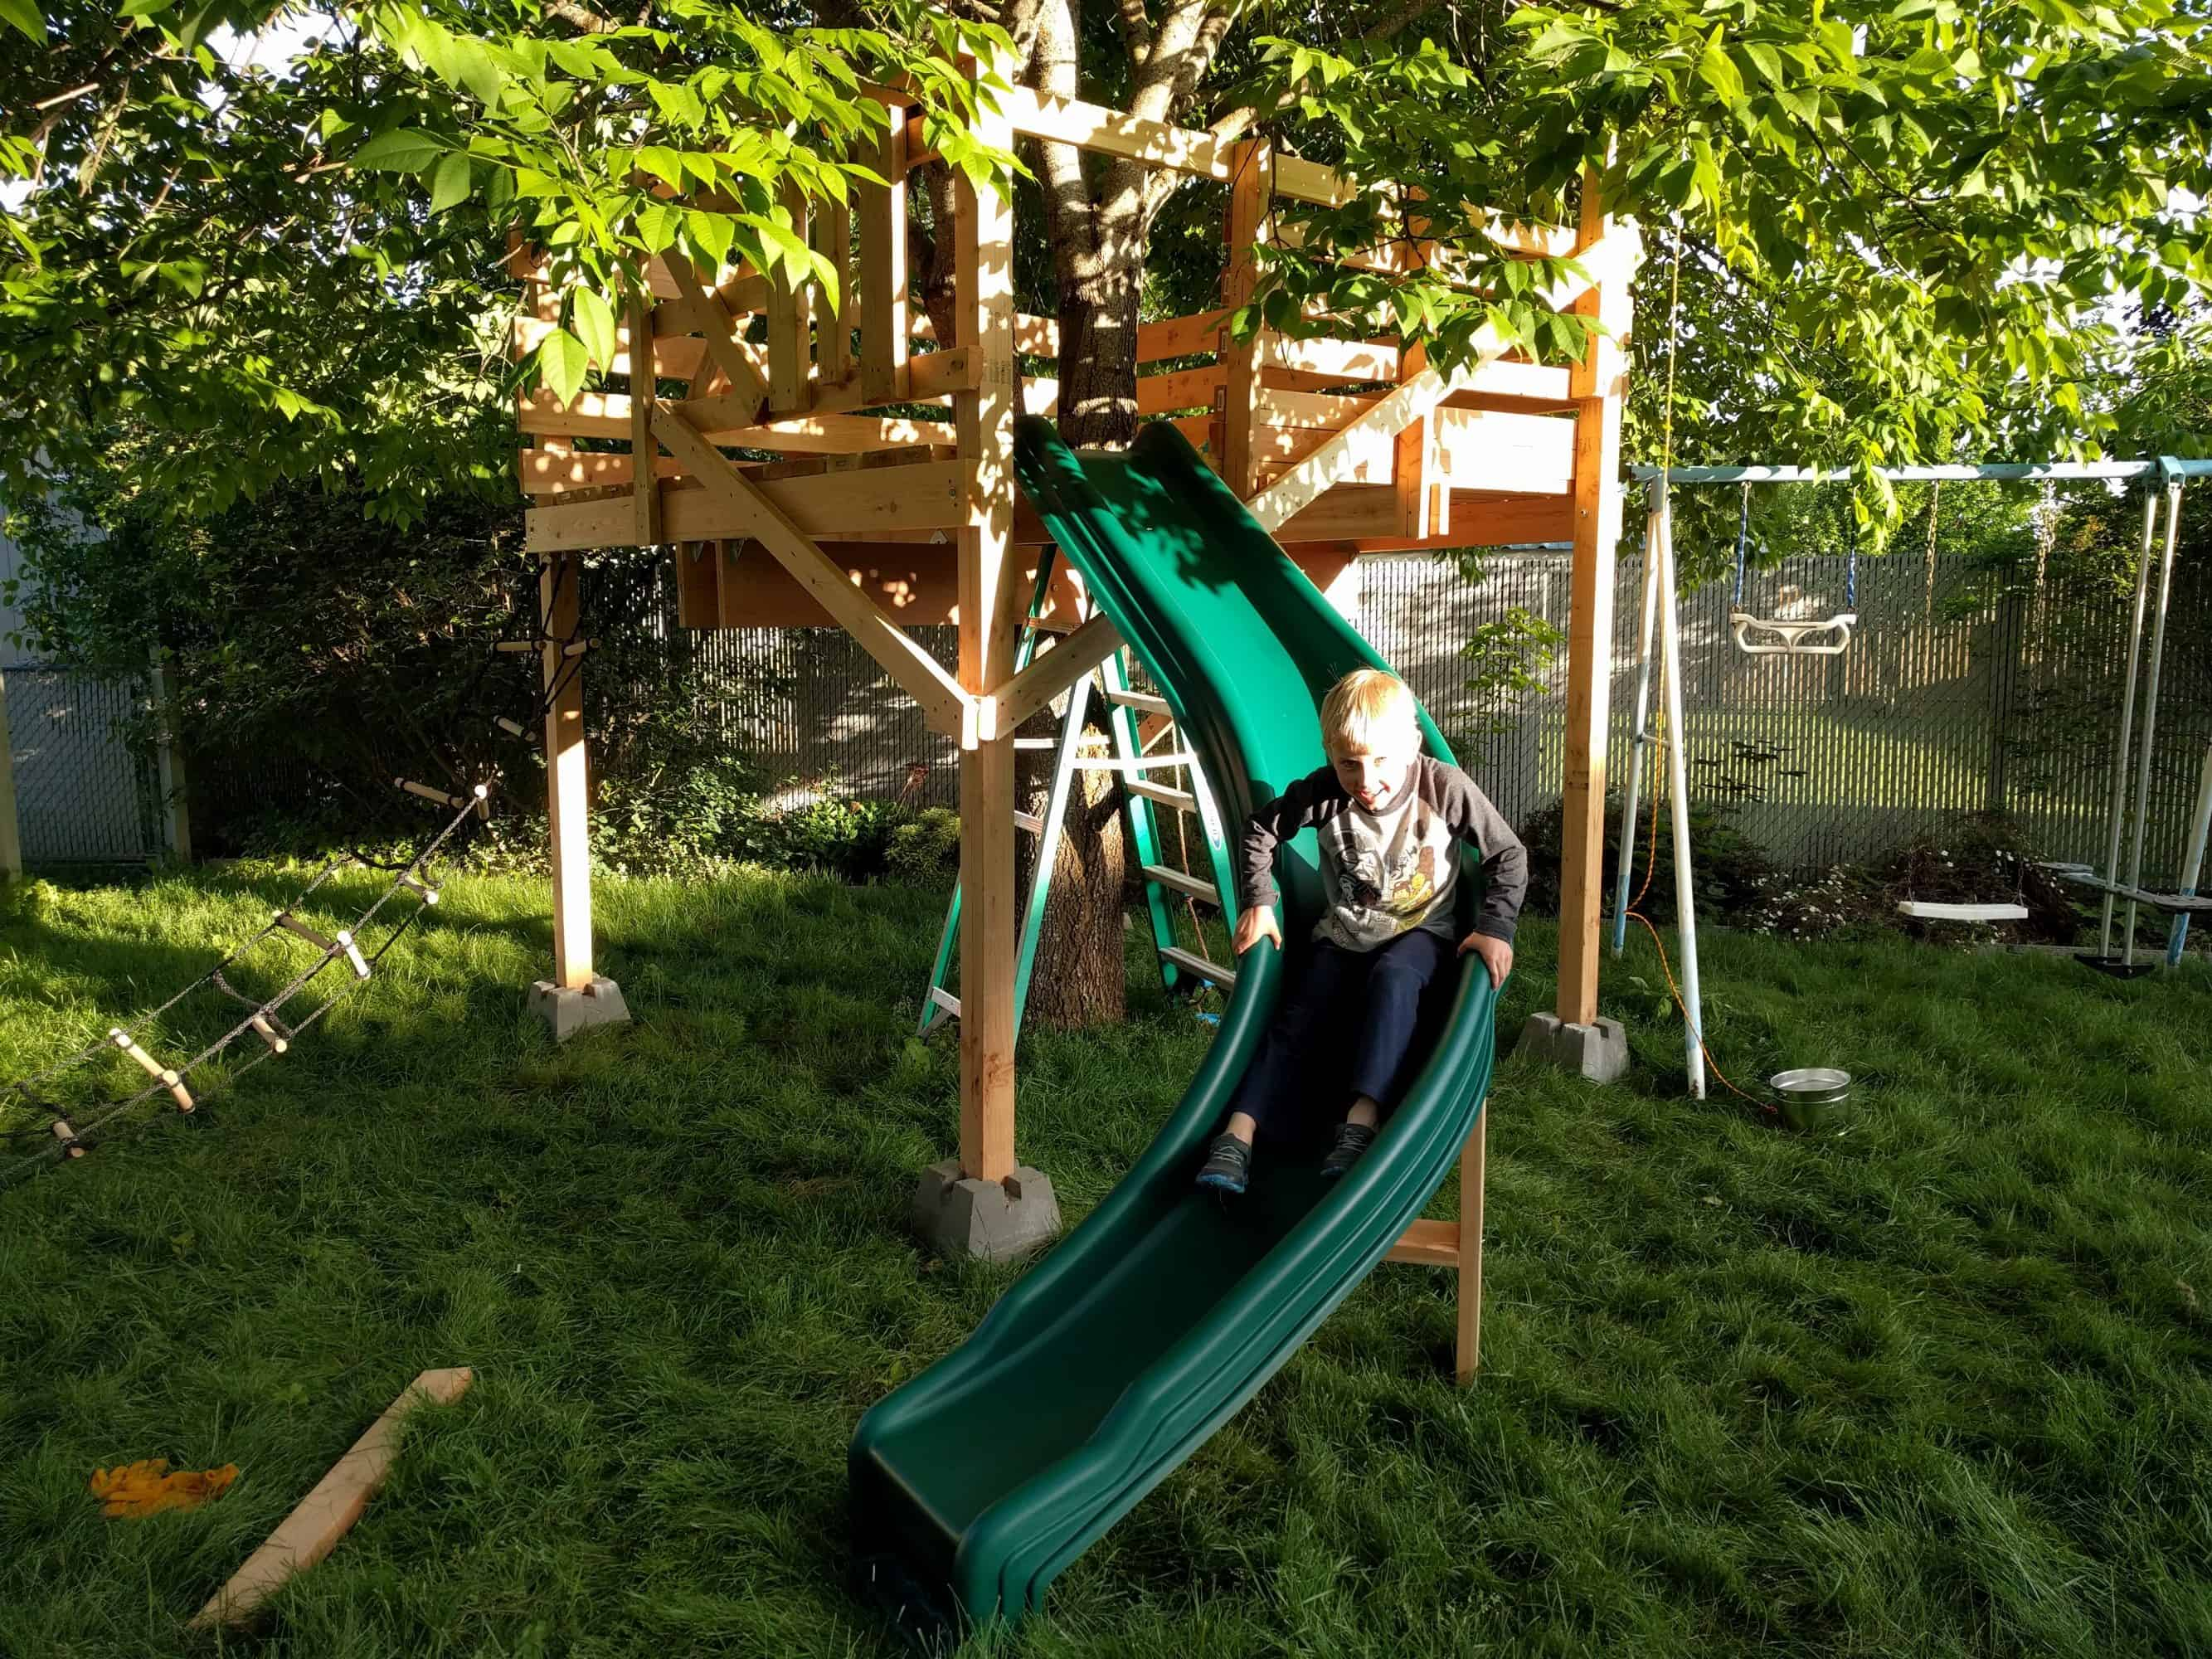 Slide is attached to teehouse. Eli is going down slide.